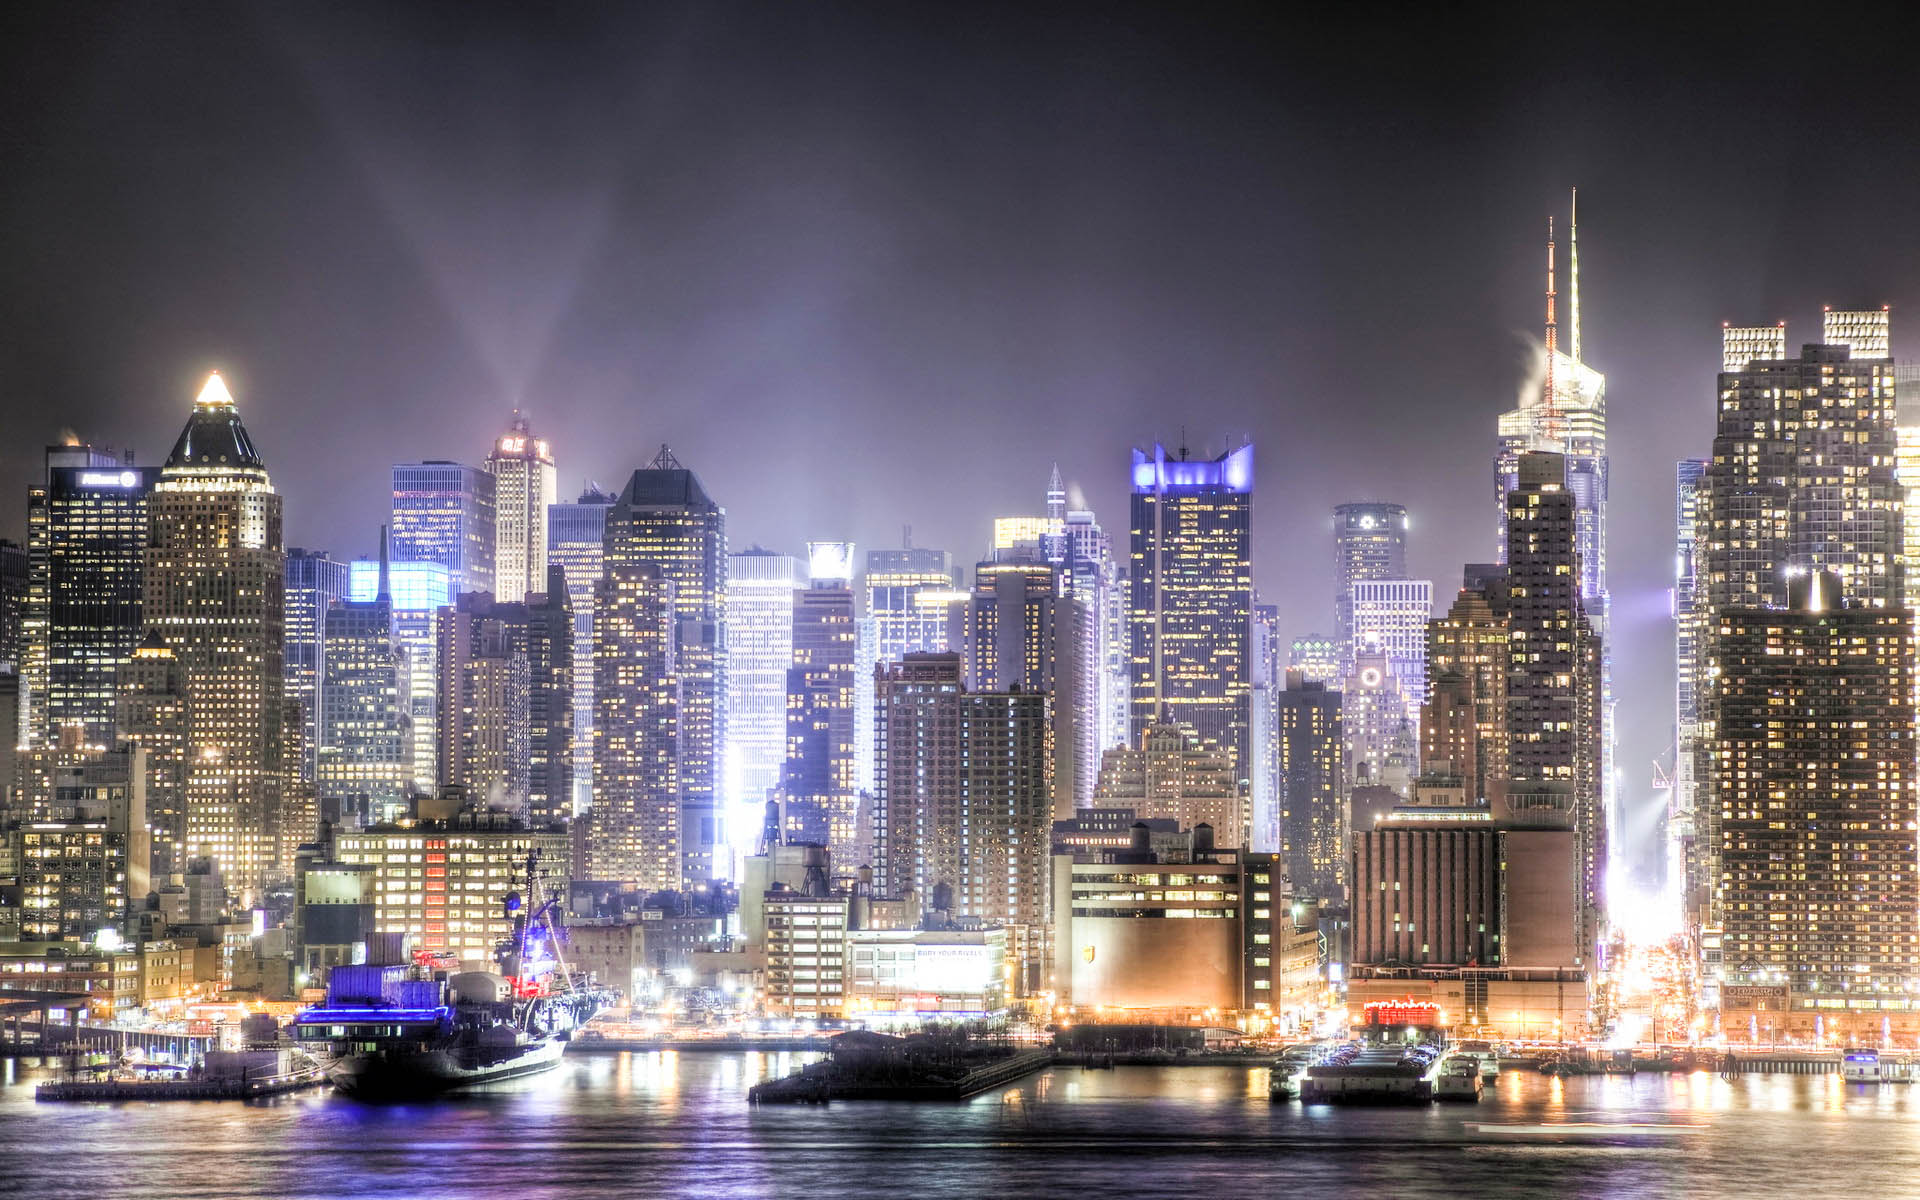 Top 10 Wallpapers Hd 1080p Manhattan Amazing Hd High Quality Wallpapers All Hd